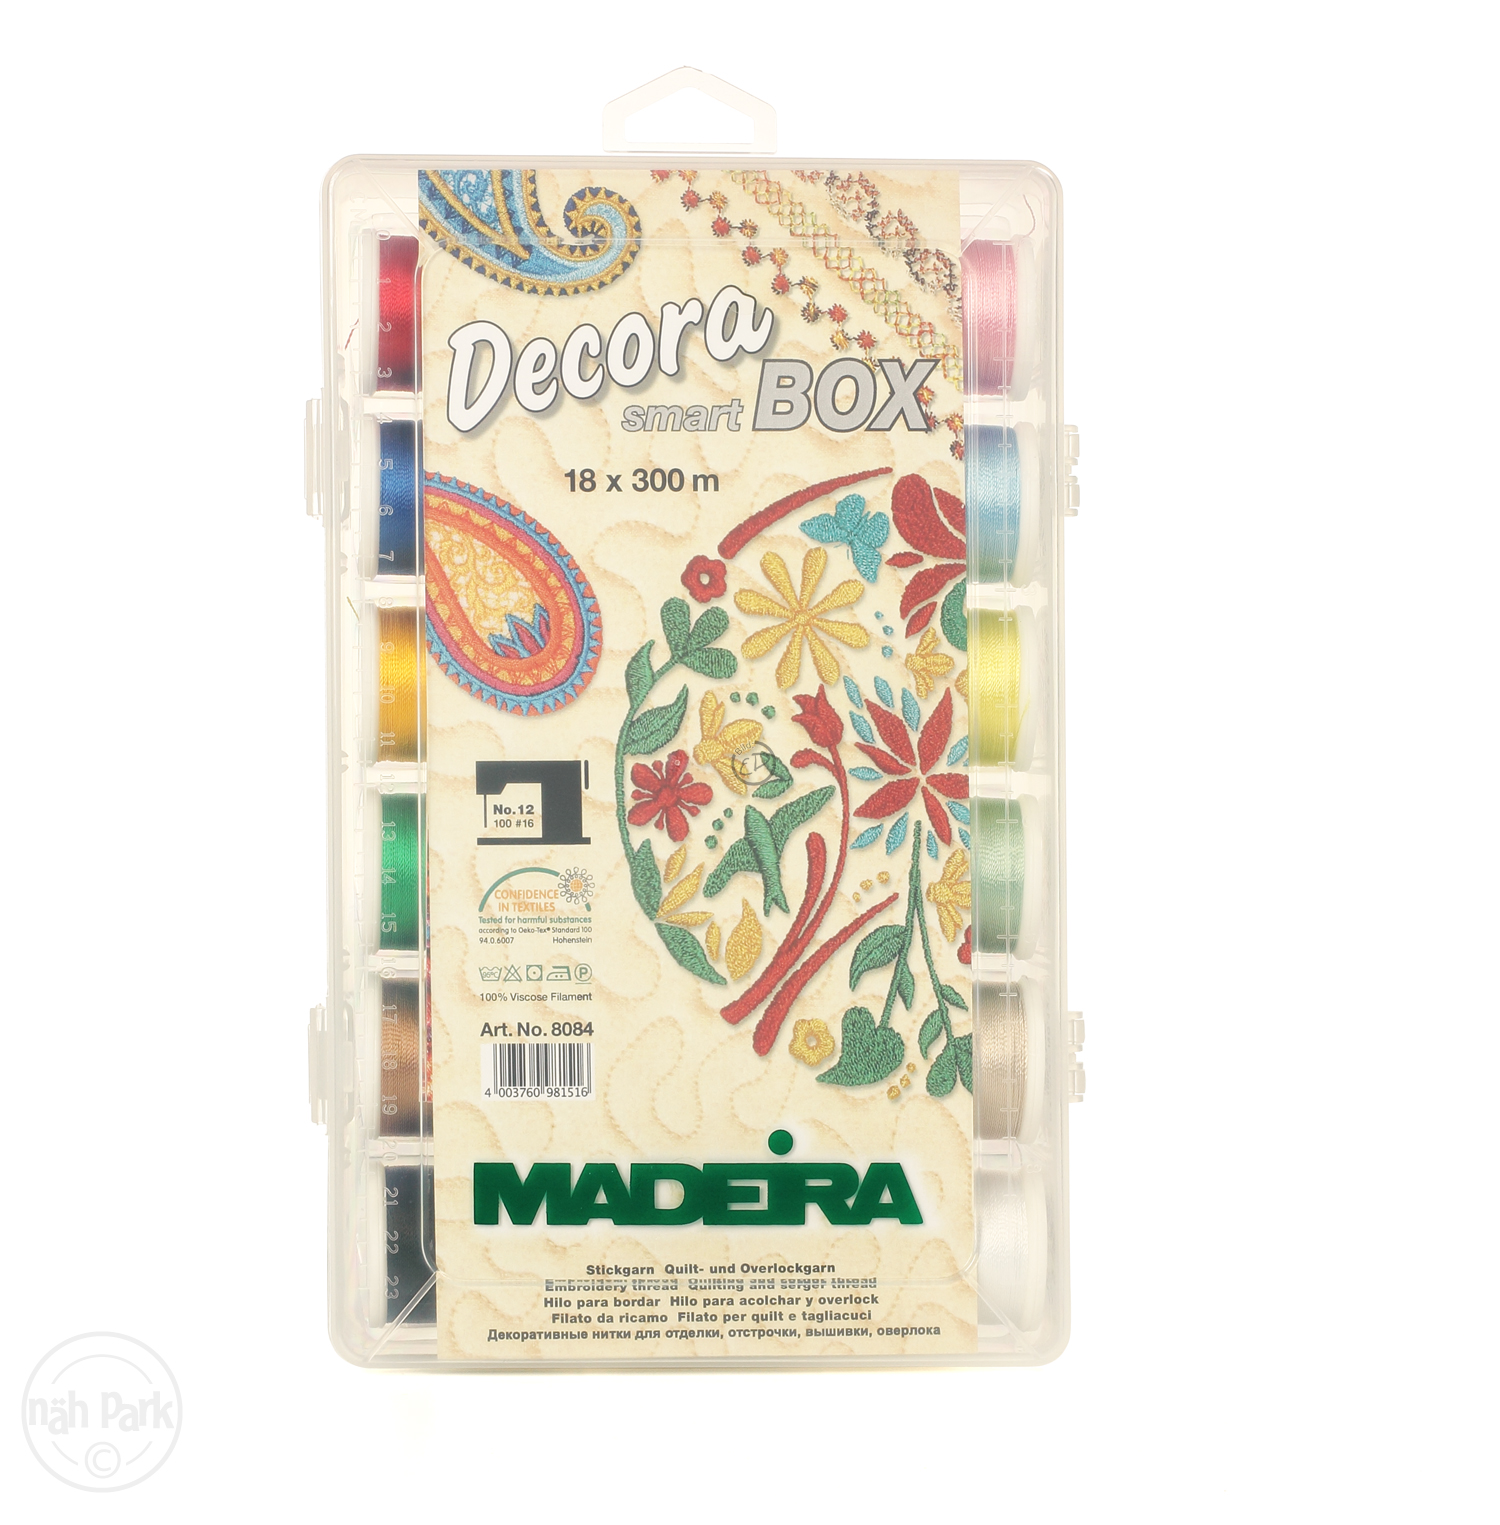 MADEIRA Smart Box Decora No.12 300m x 18 Spulen